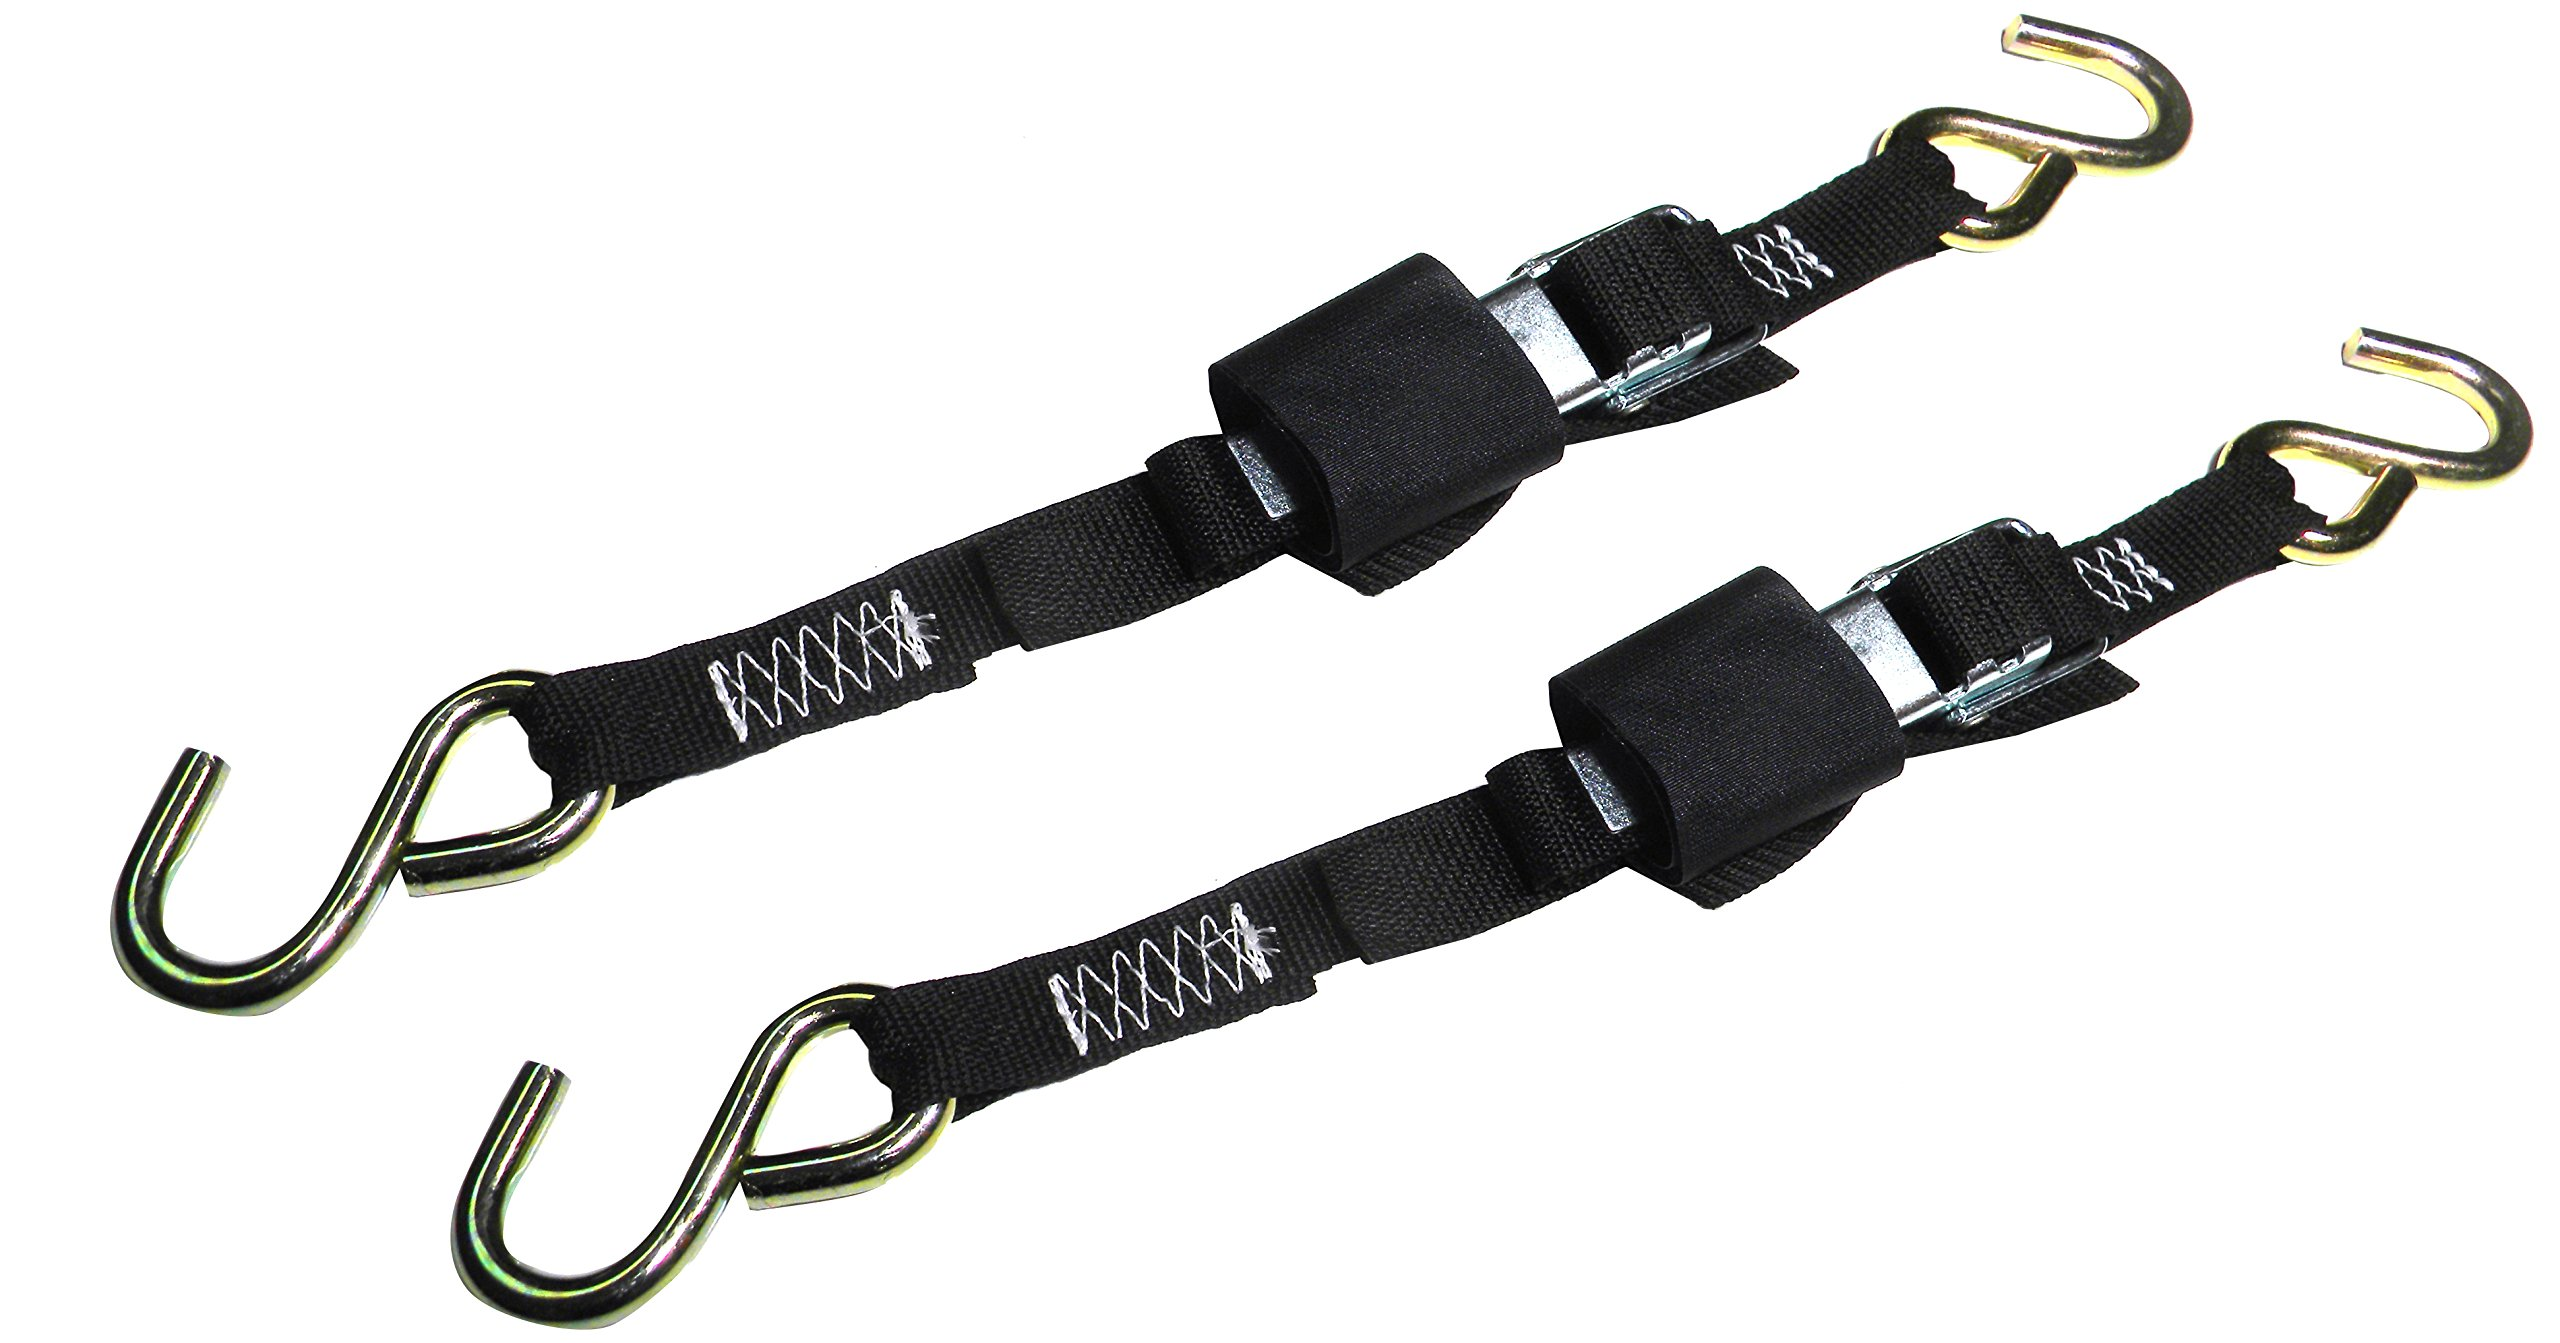 Rod Saver Paddle Buckle 1-inch Trailer Tie-Downs (2-Feet), Pair